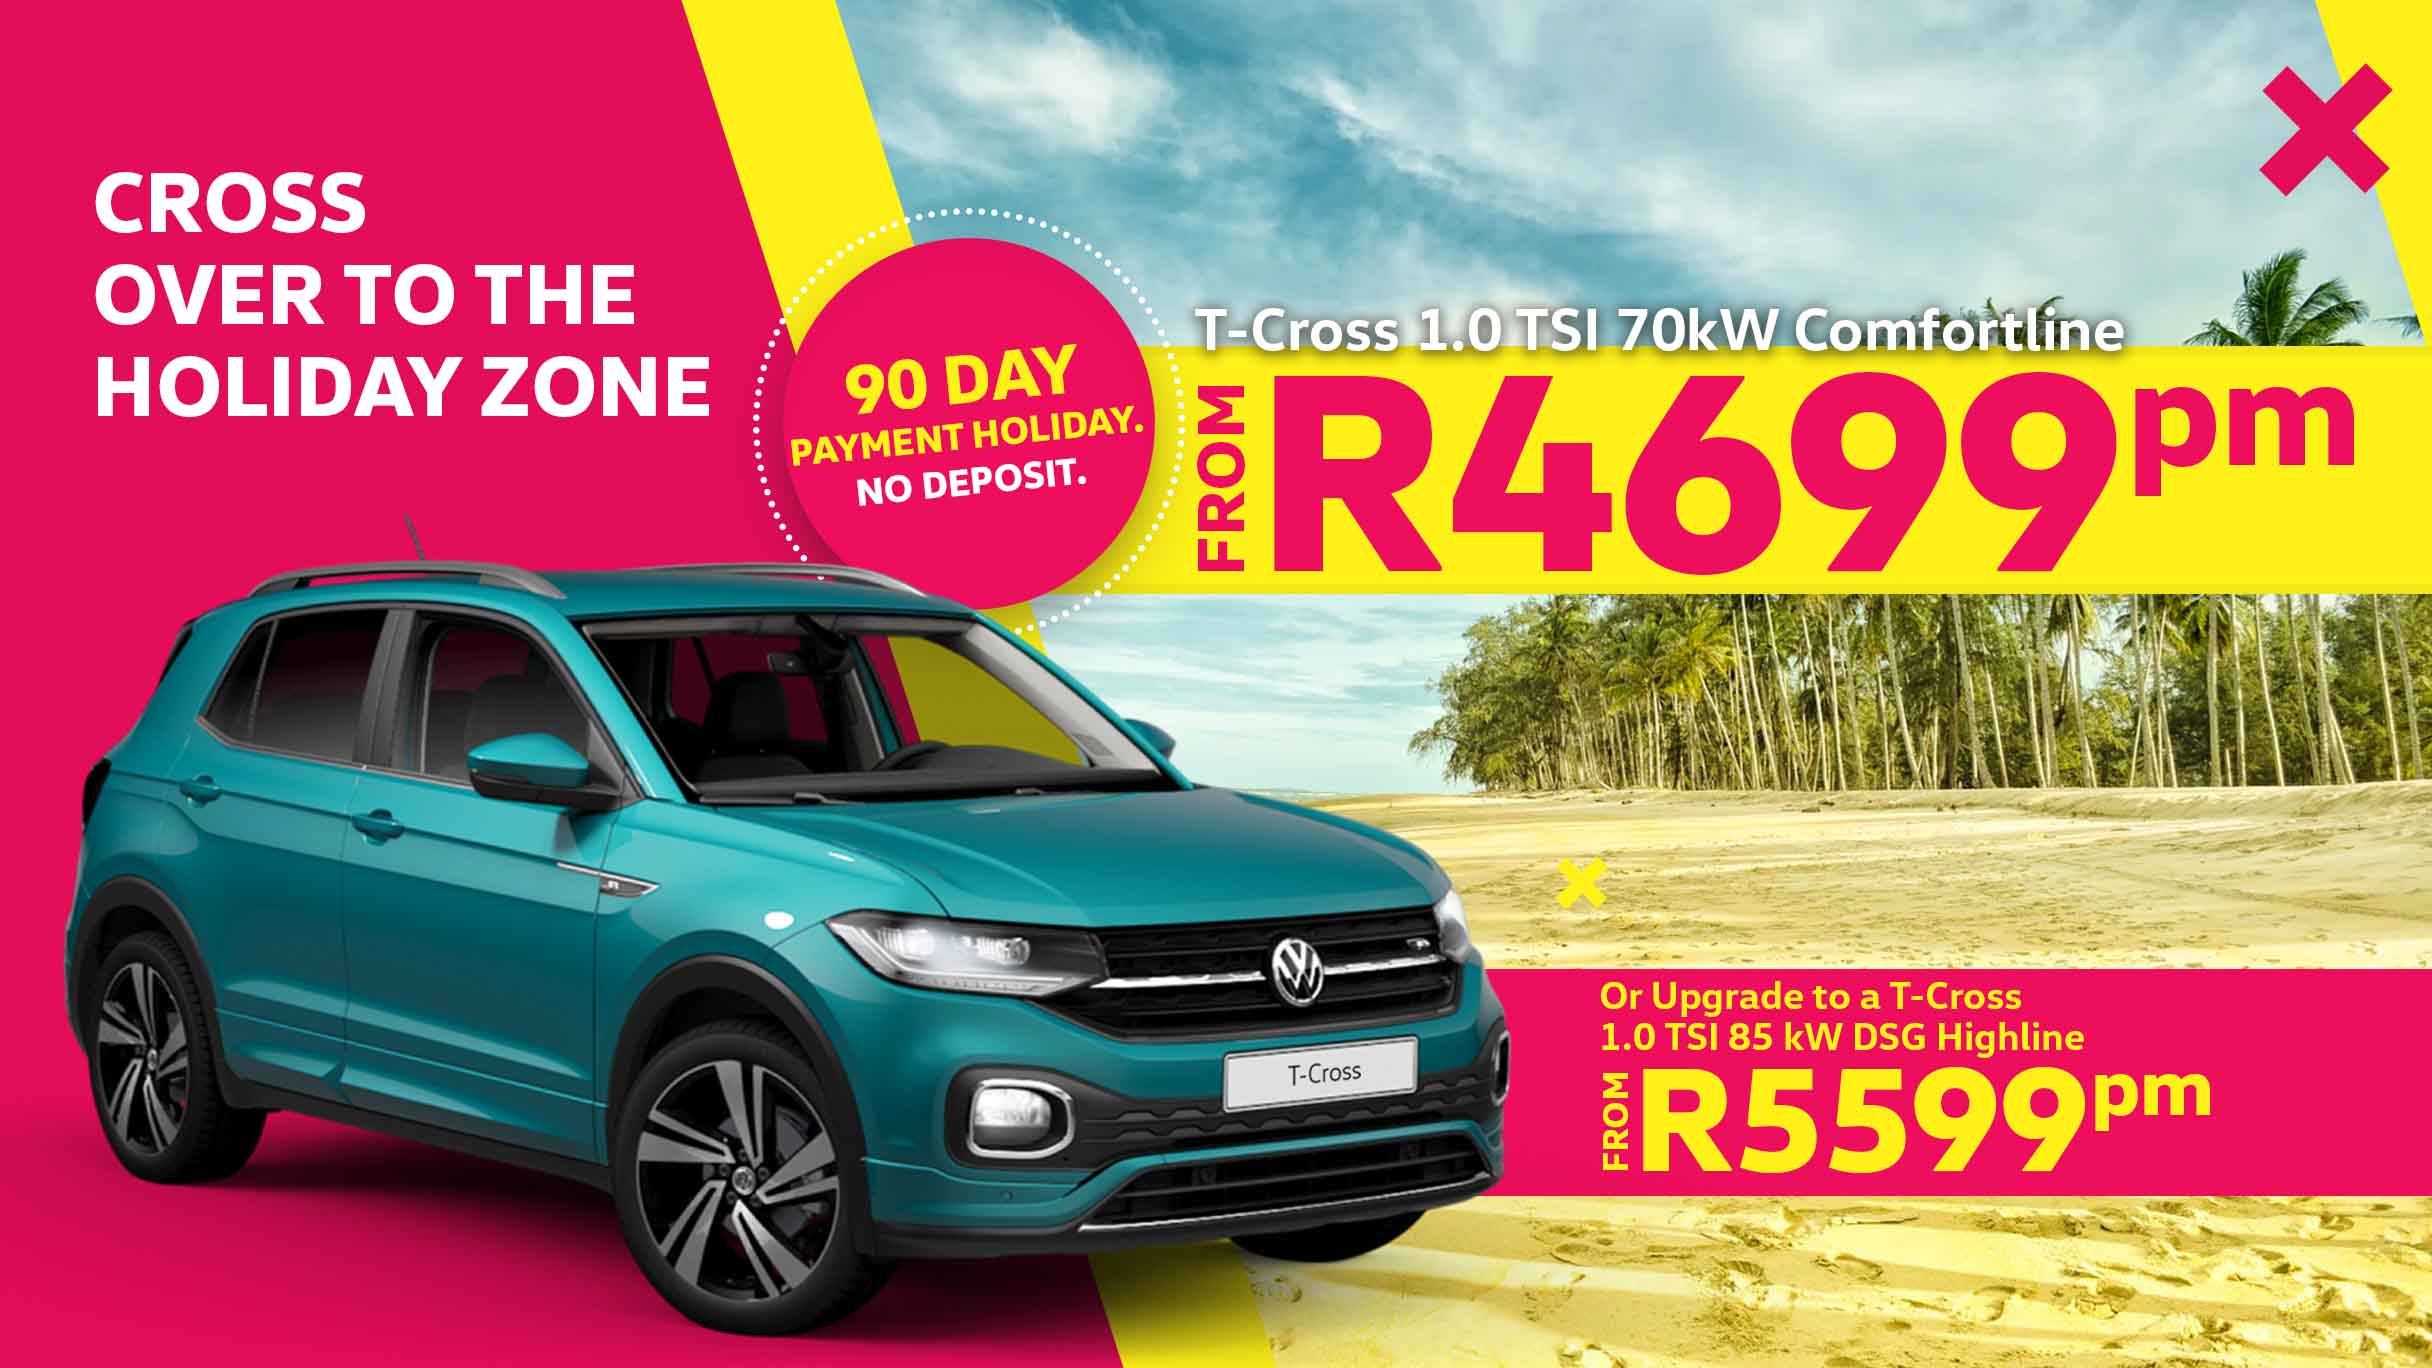 Barons Cape Town T-Cross offer